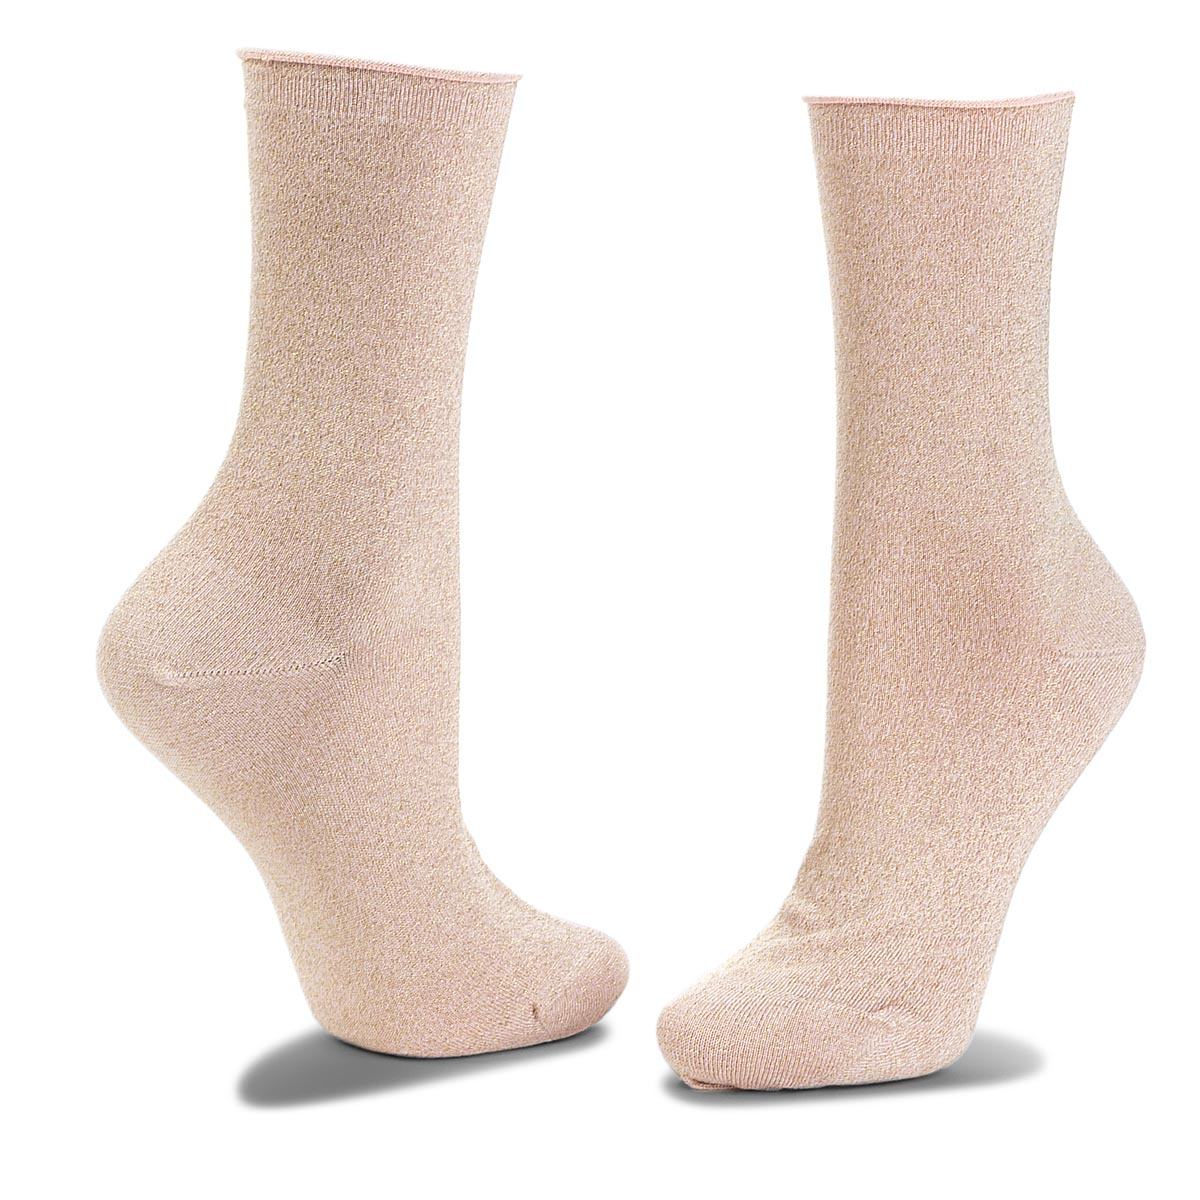 Skarpety Wysokie Damskie JOOP! - Lurex Sock Ier 760.059 Marrakesh Rose 4200